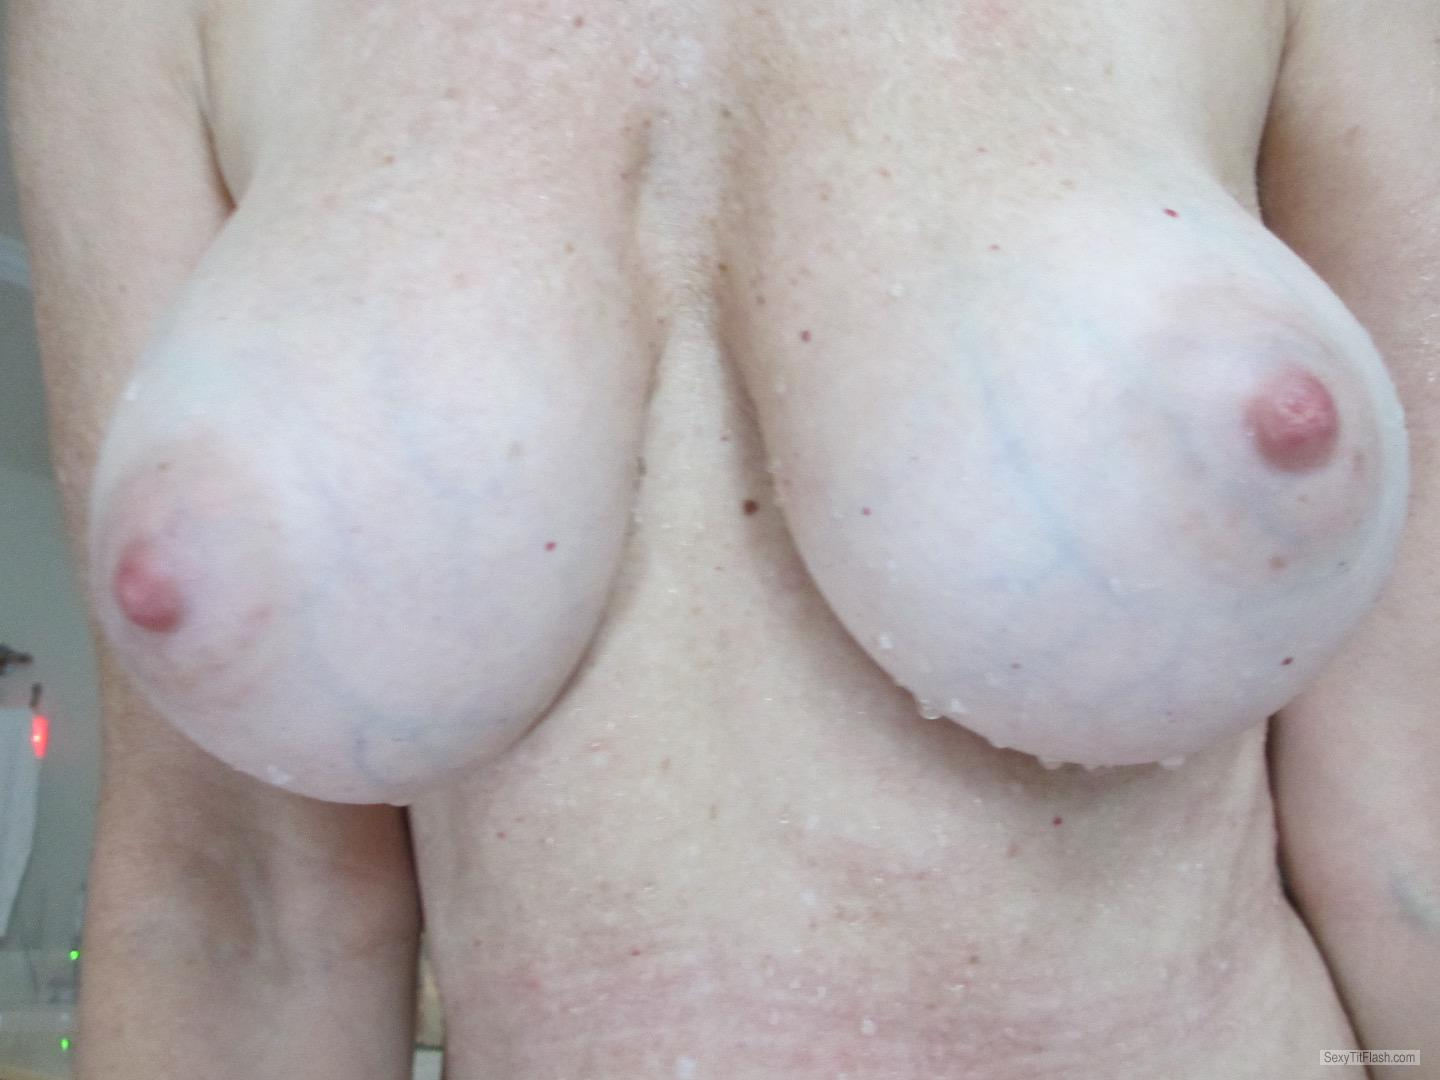 Tit Flash: Wife's Big Tits - Rellim from United States